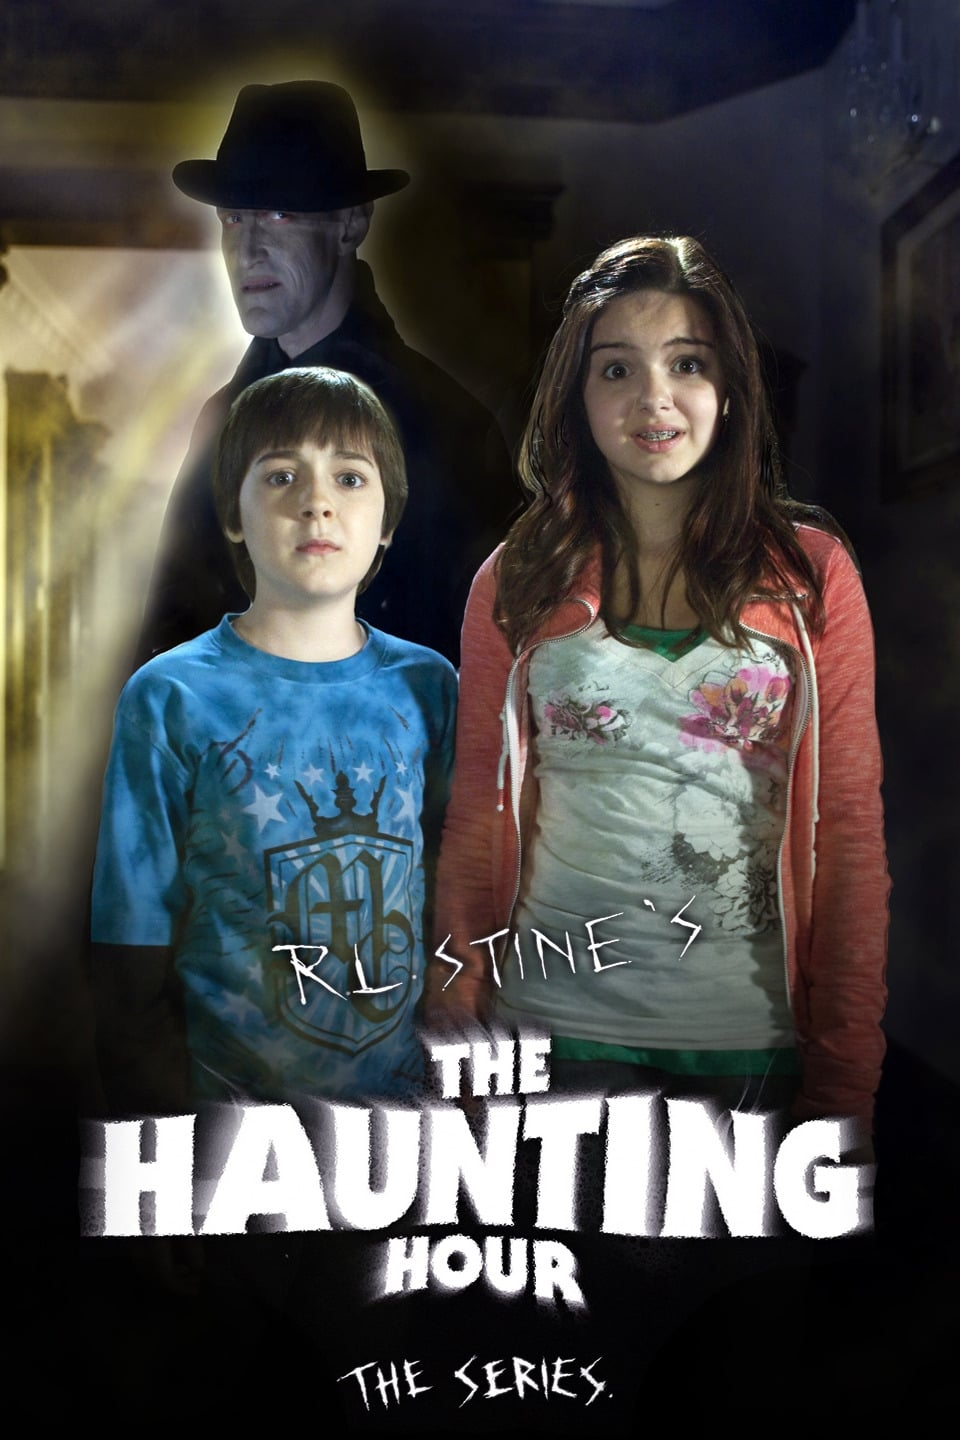 R. L. Stine's The Haunting Hour (2010)